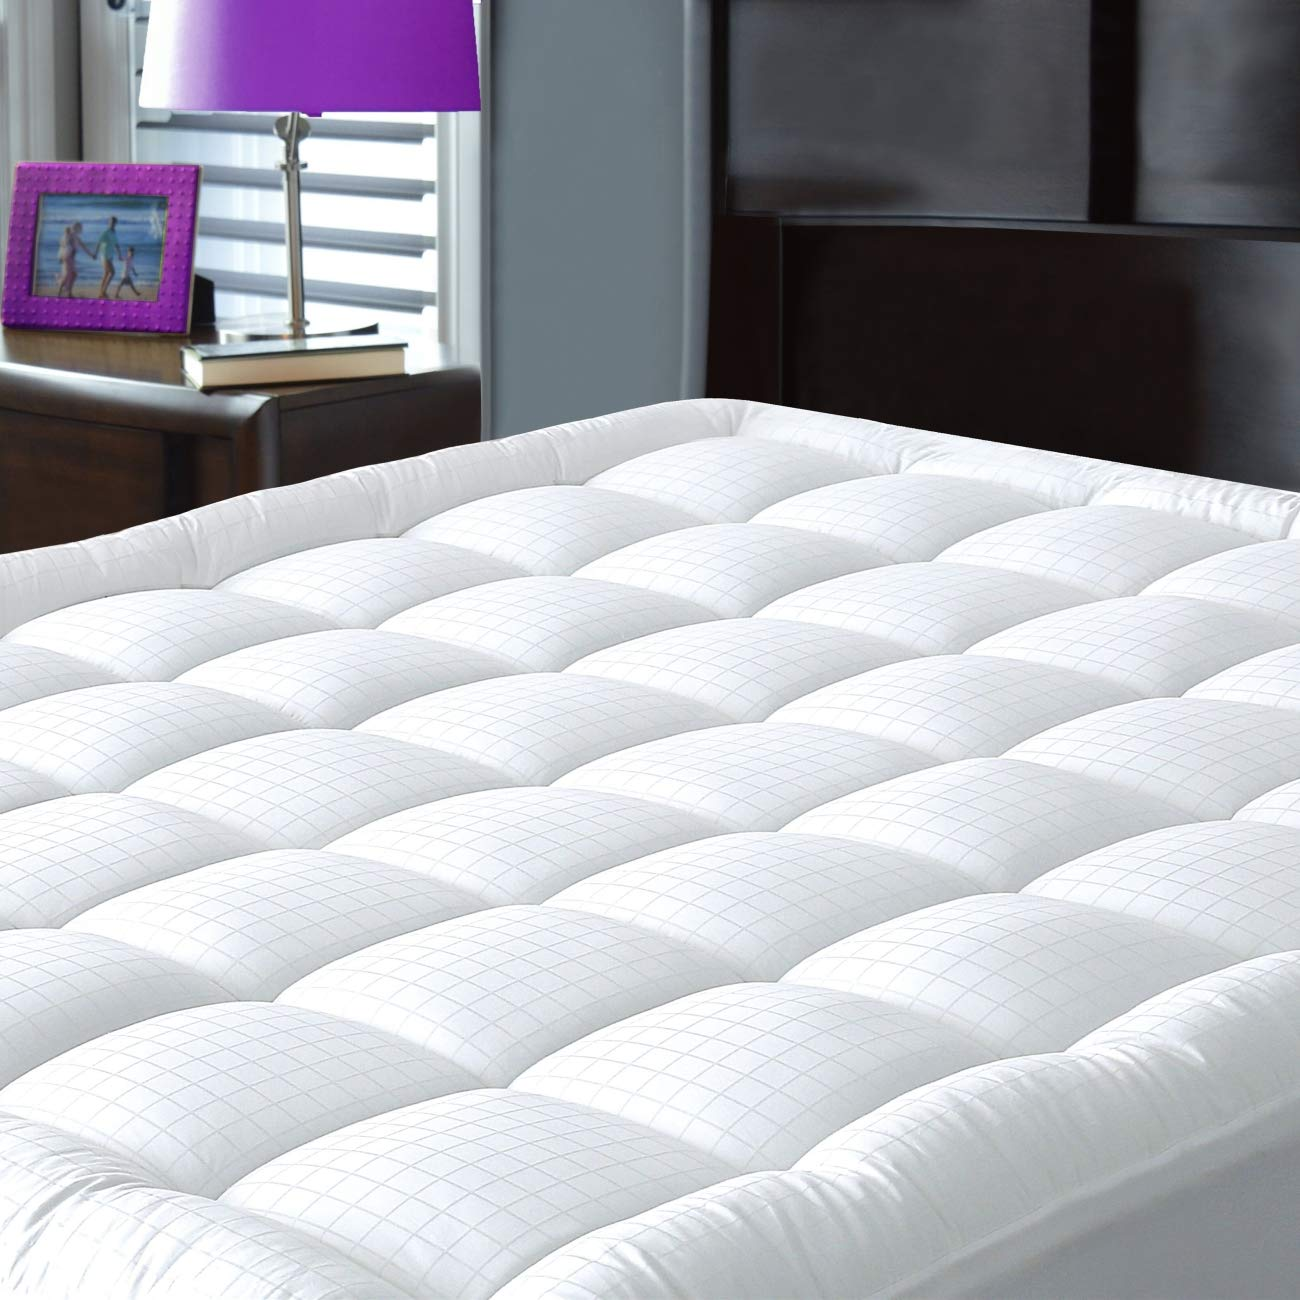 JURLYNE Pillowtop Mattress Pad Cover Twin Size - Hypoallergenic - Cotton Down Alternative Filled Mattress Topper